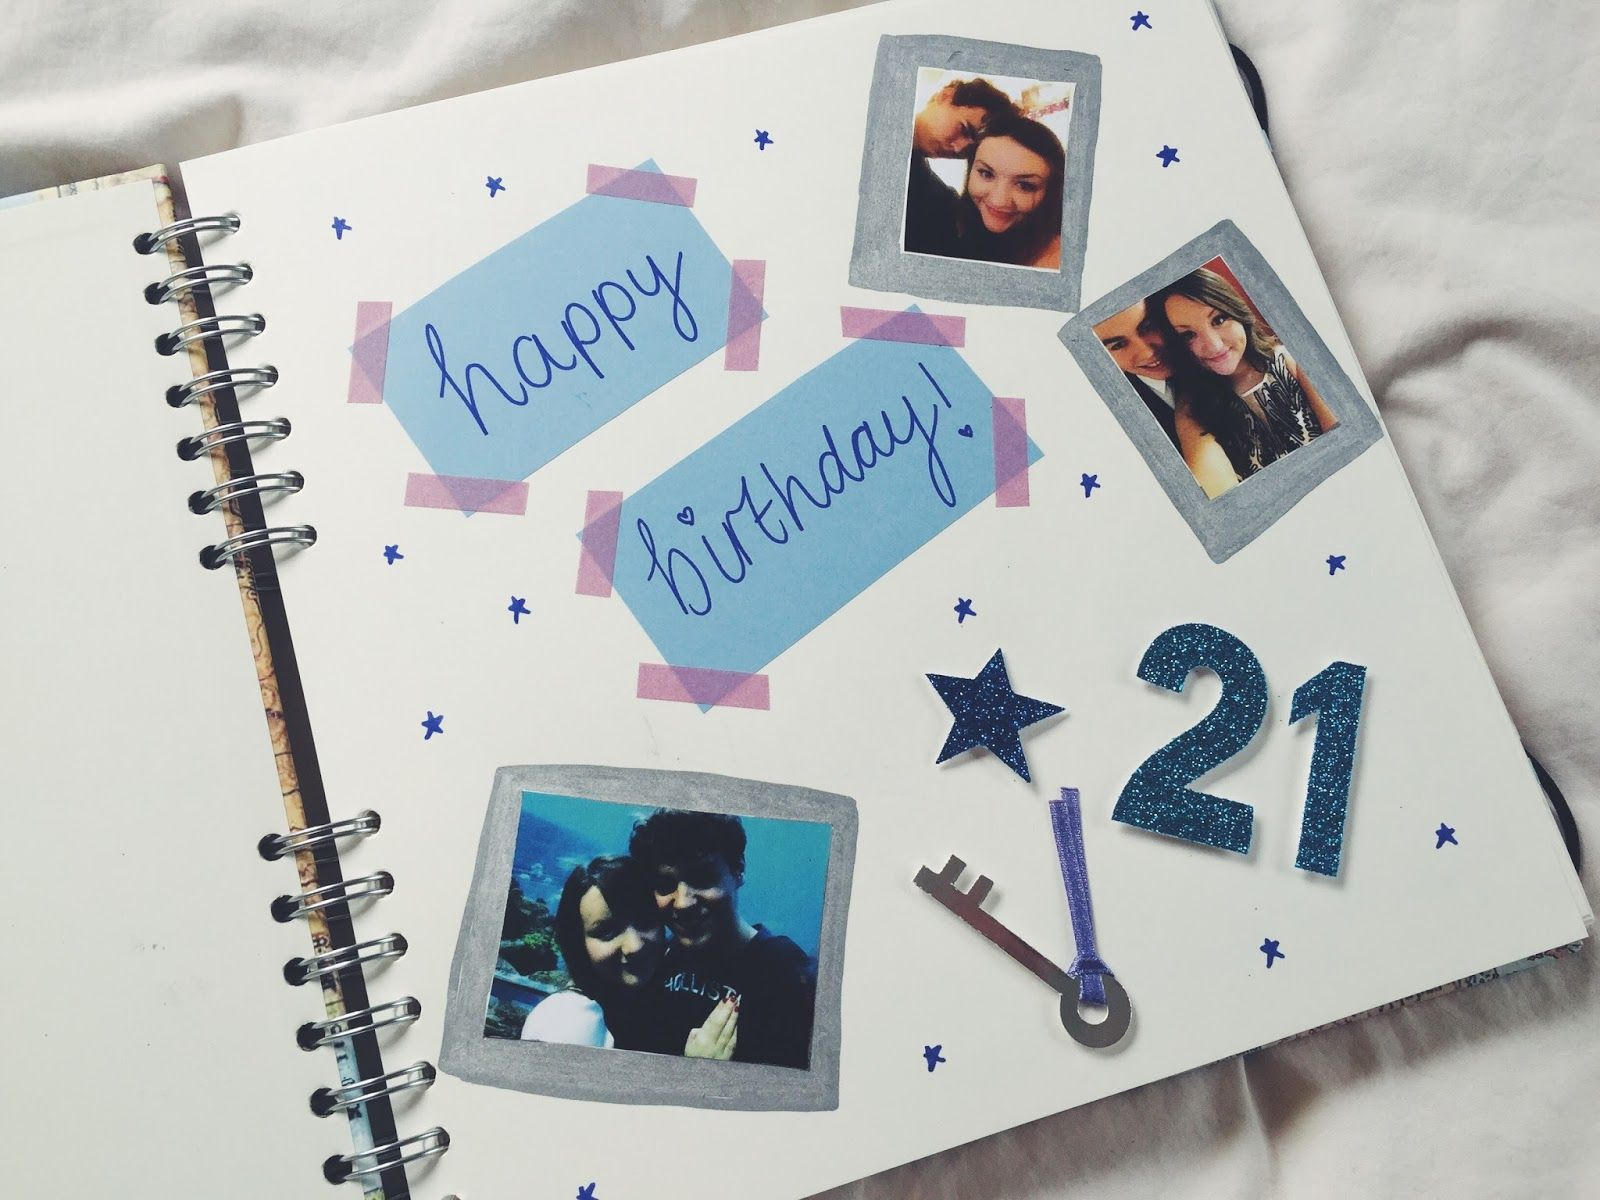 30 Wonderful Photo of Scrapbook Gift For Boyfriend . Scrapbook Gift For  Boyfriend Jessica Bird Lifestyle Best… | Scrapbook gift, Boyfriend gifts,  Bday gifts for him